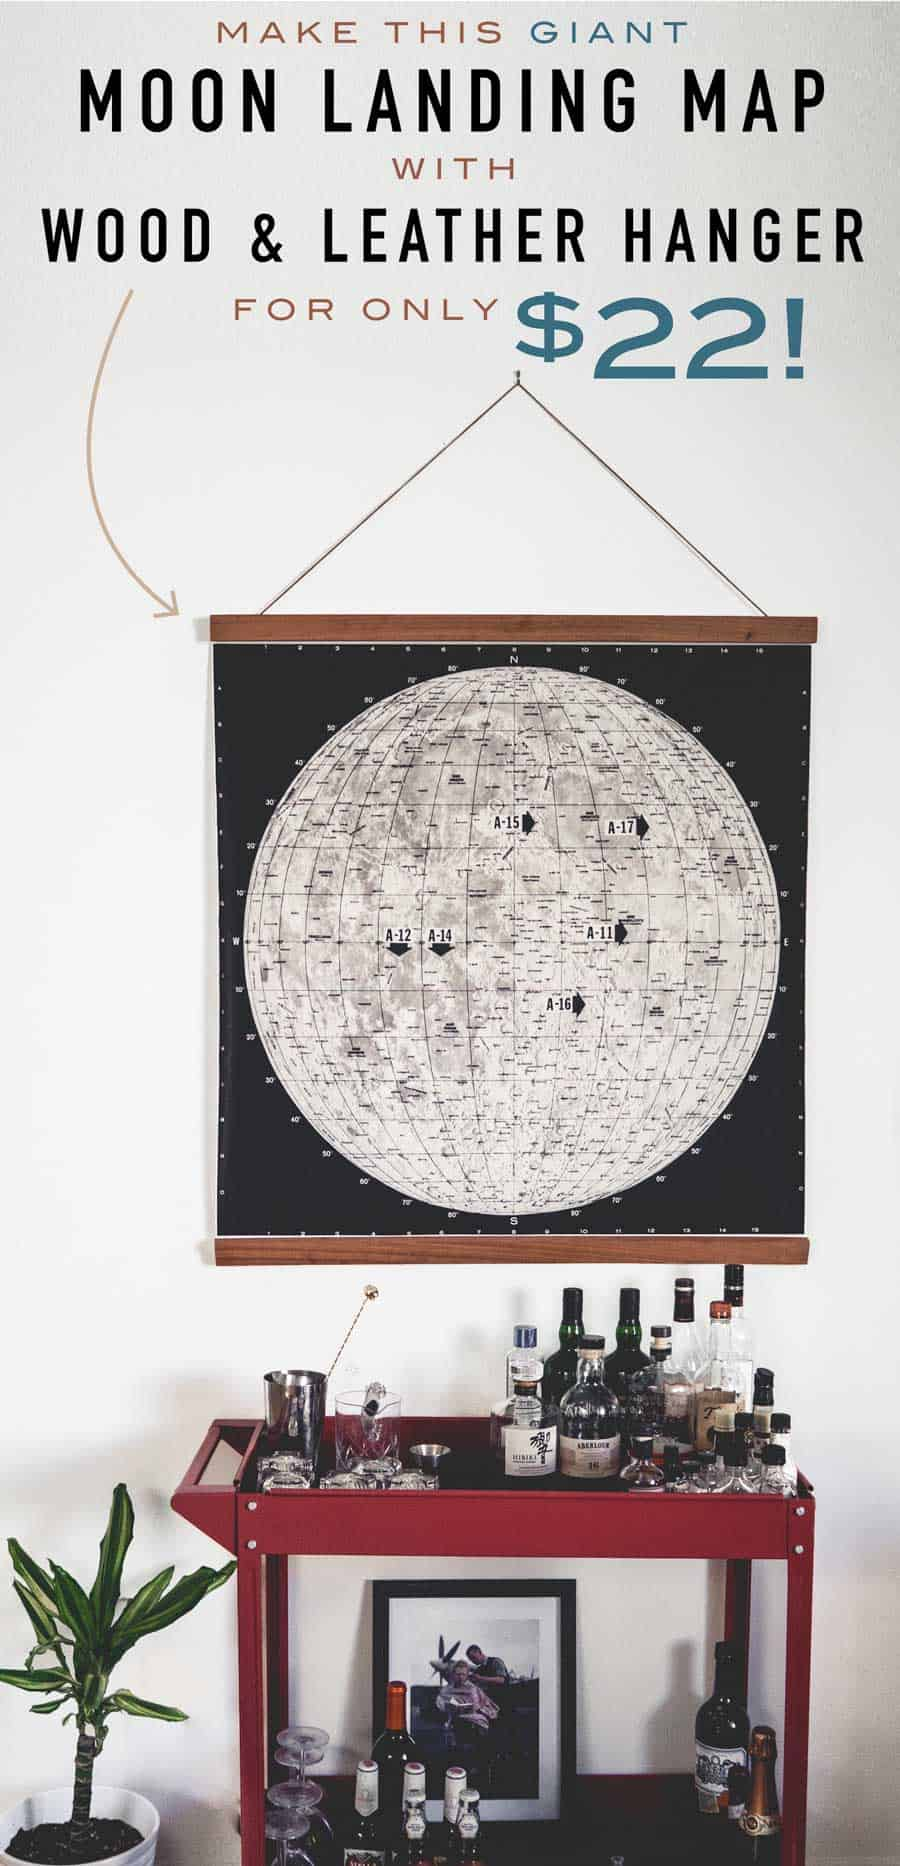 Make This Giant Moon Landing Map with Wood & Leather Hanger for Only $22! Easy DIY Frame